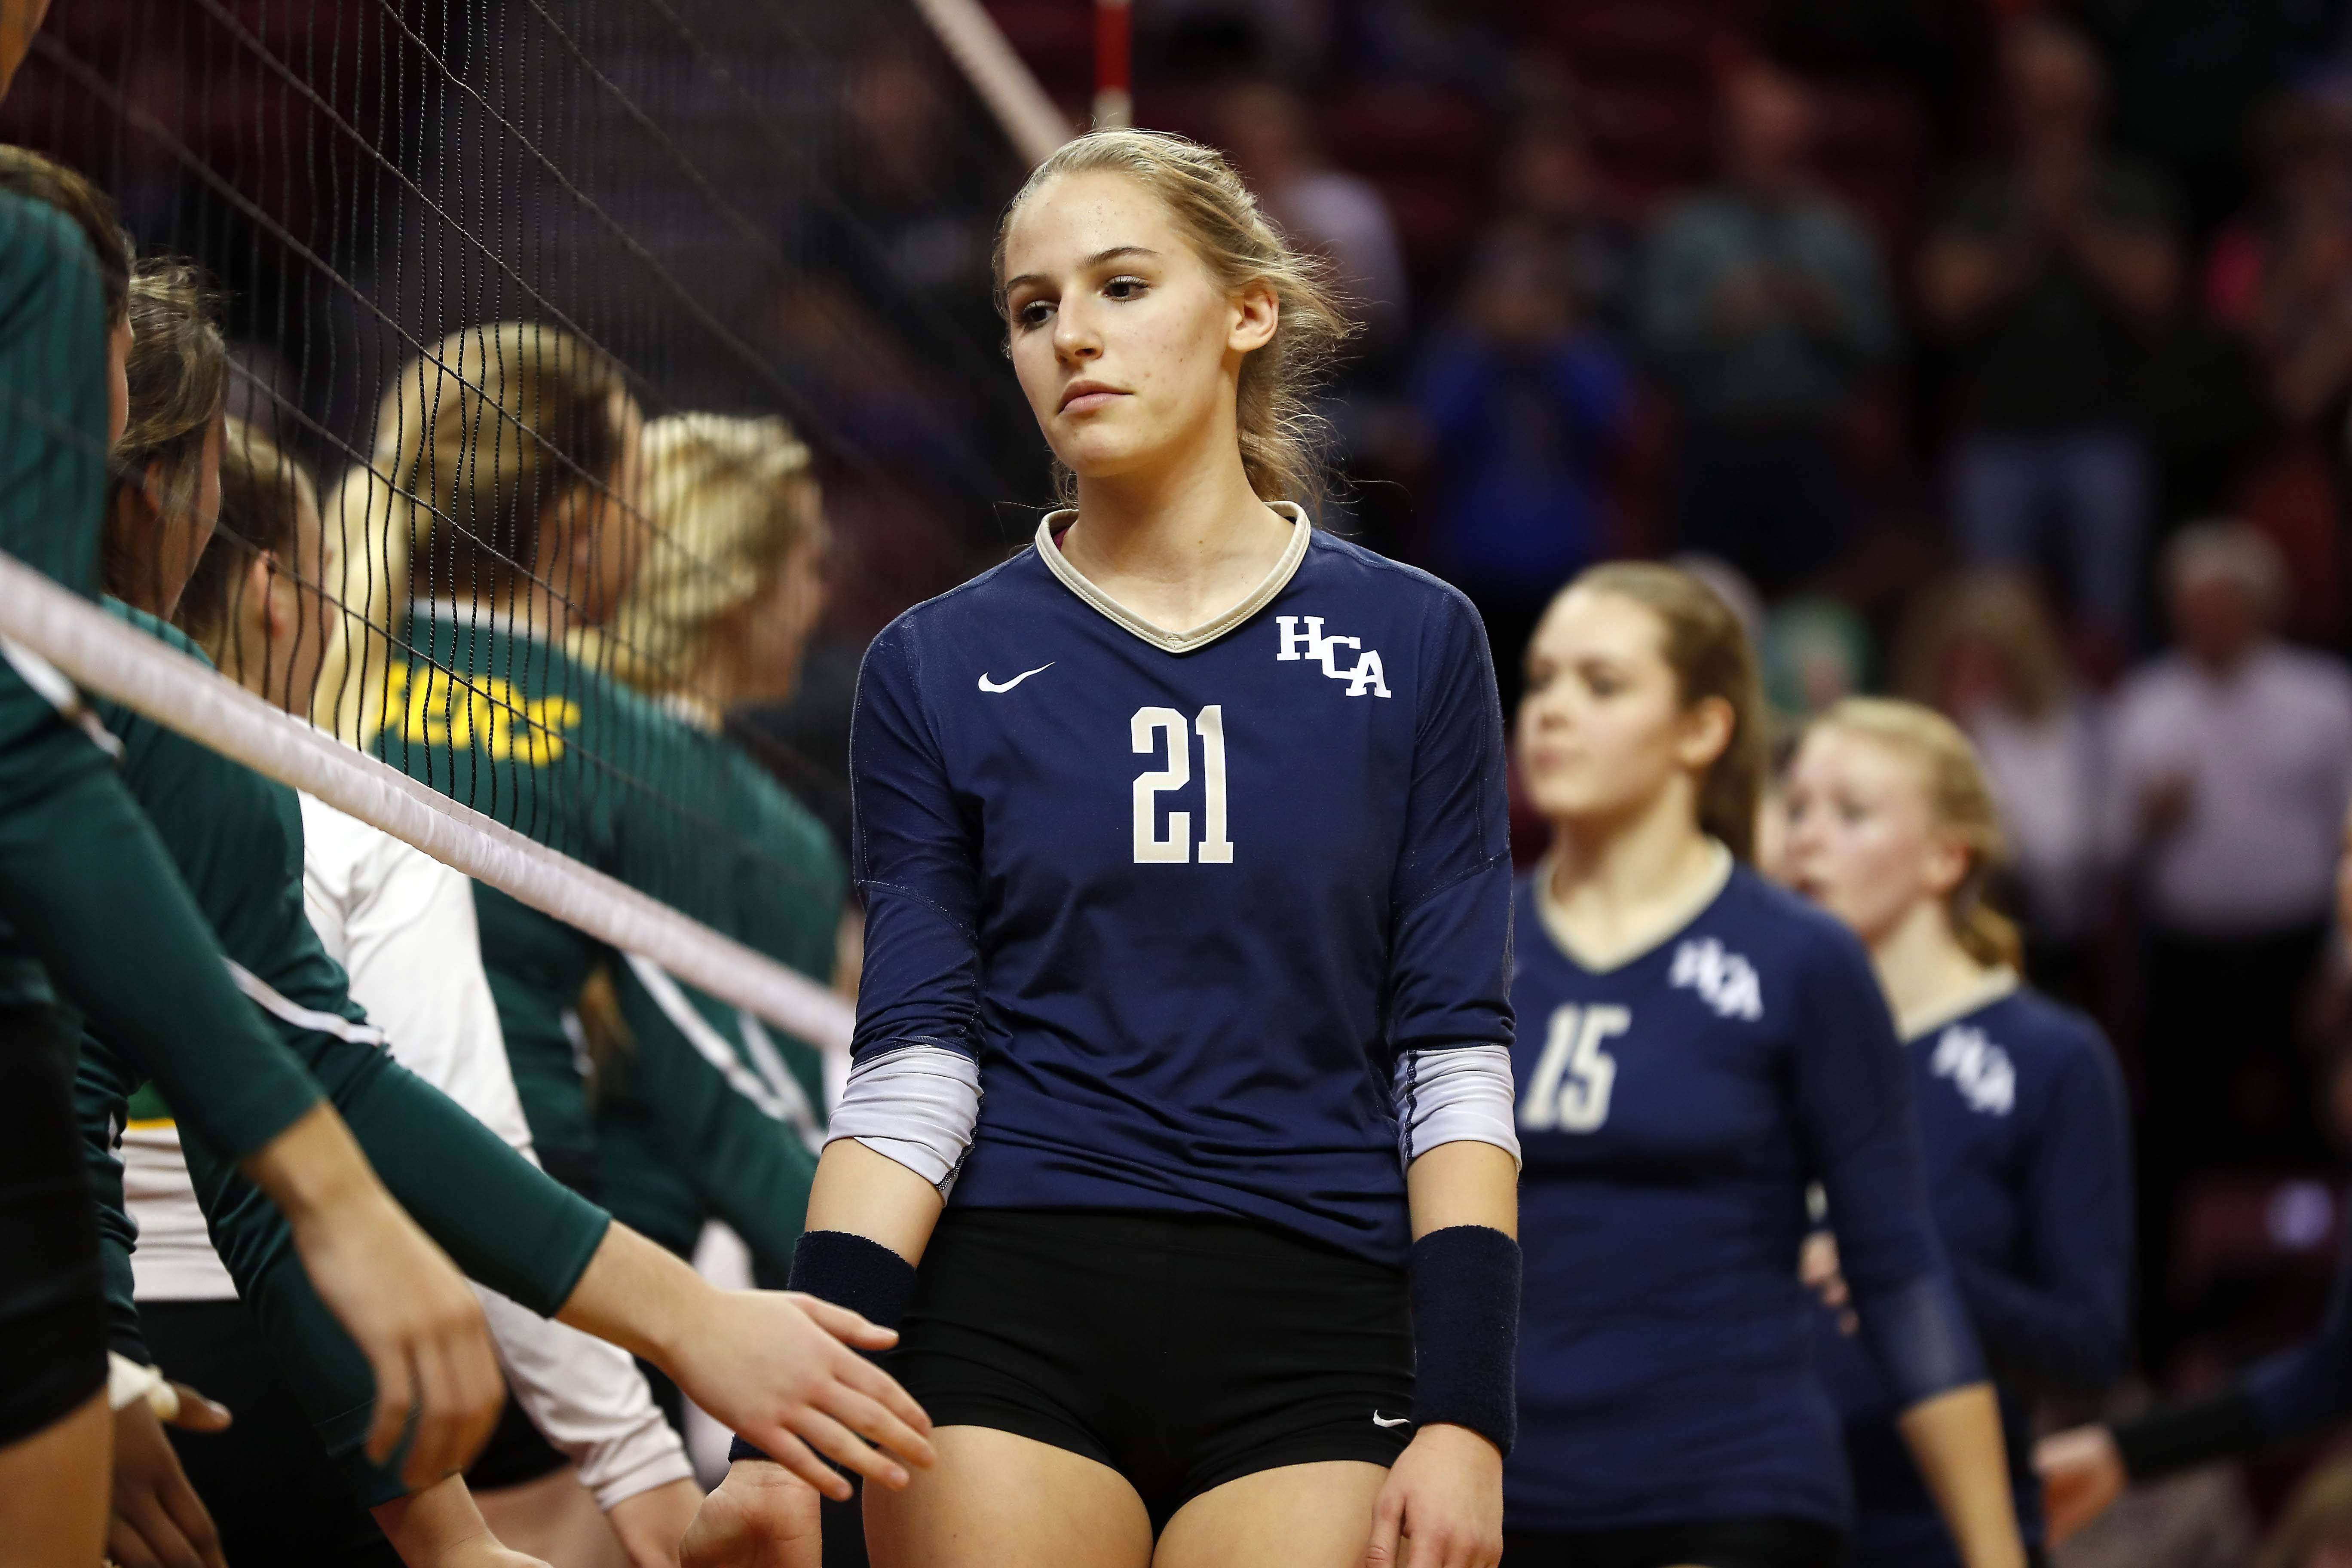 Girls volleyball: St. Thomas More takes out Harvest Christian